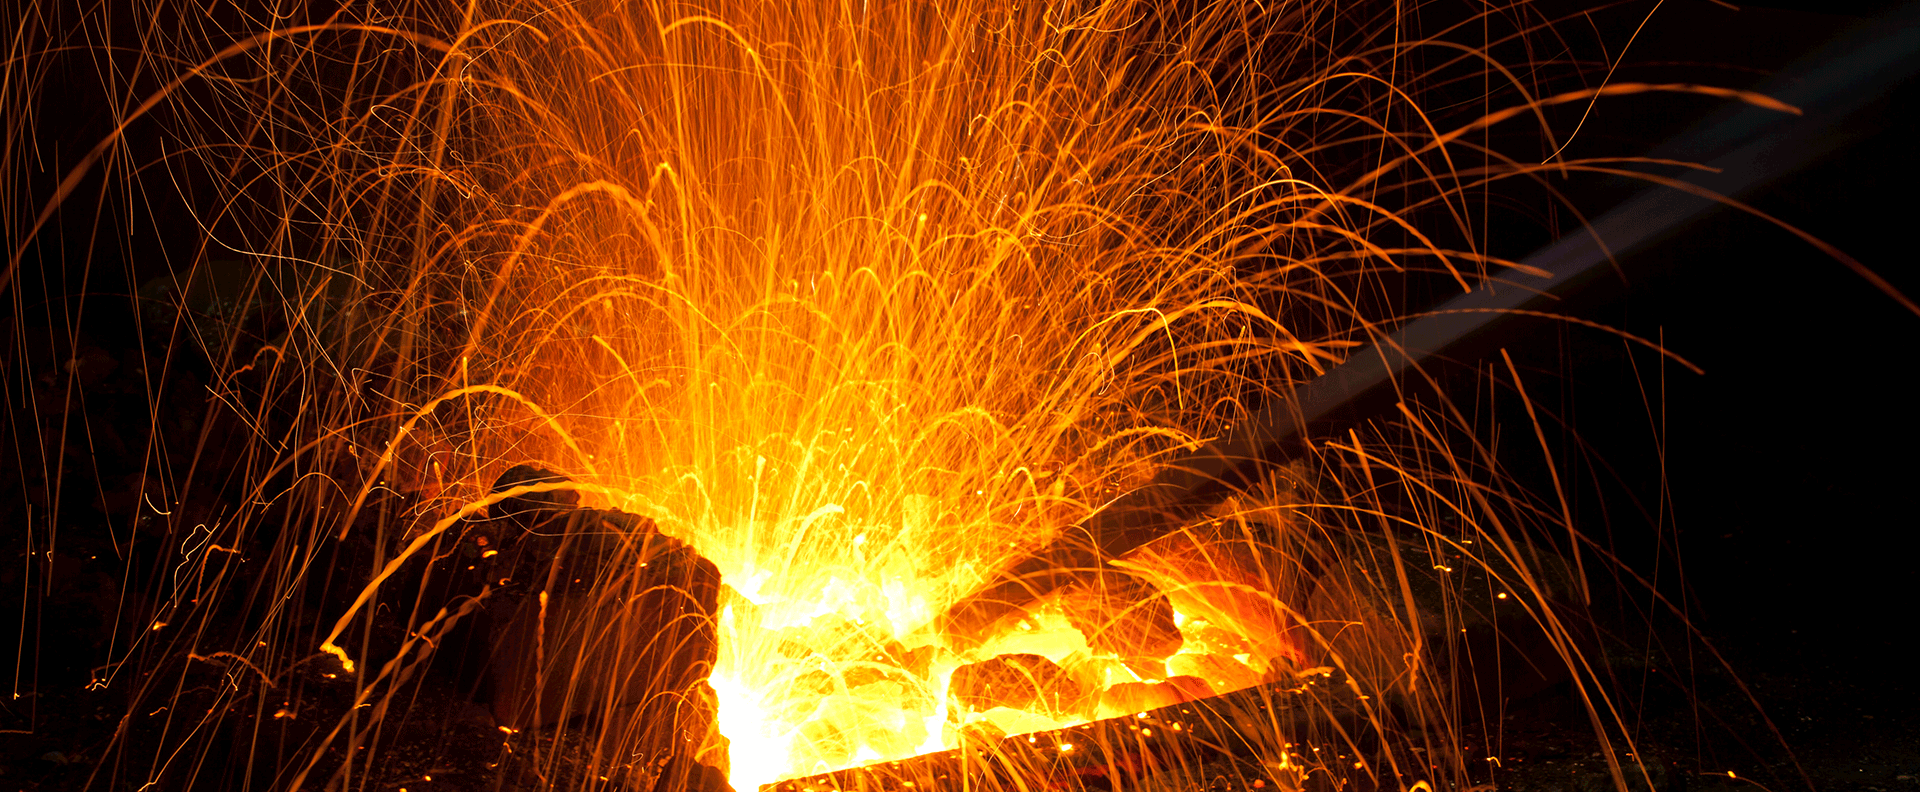 Industrial furnace system